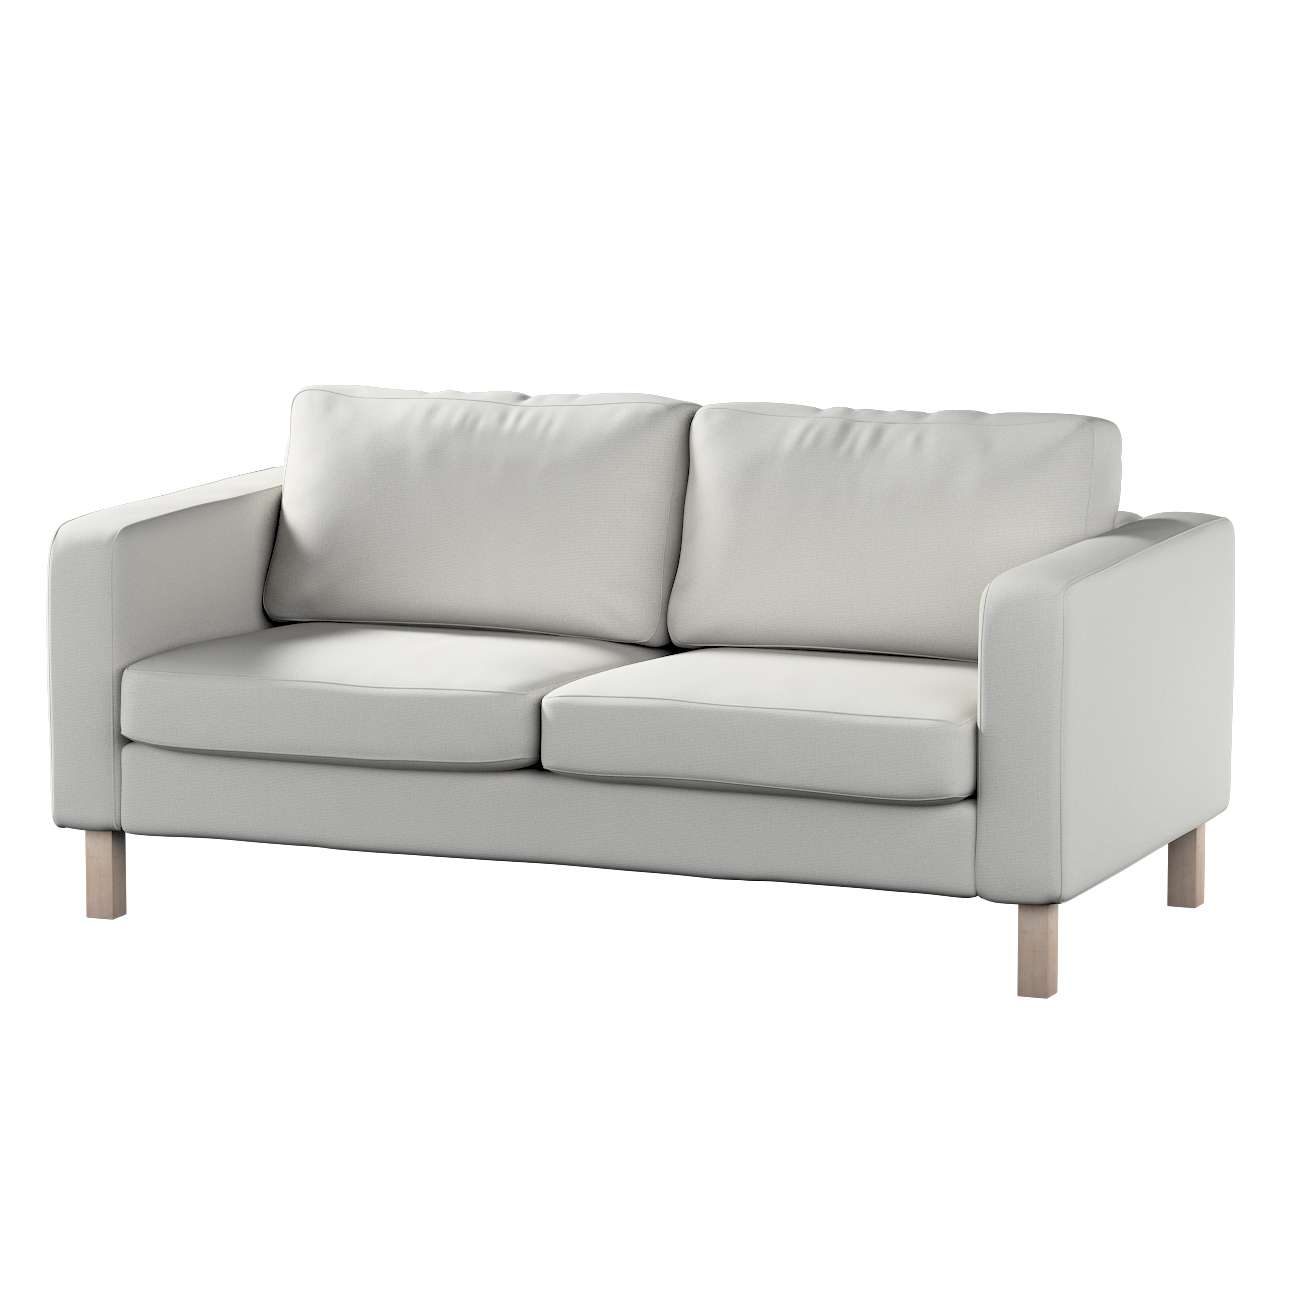 Karlstad 2-seater sofa cover in collection Etna, fabric: 705-90